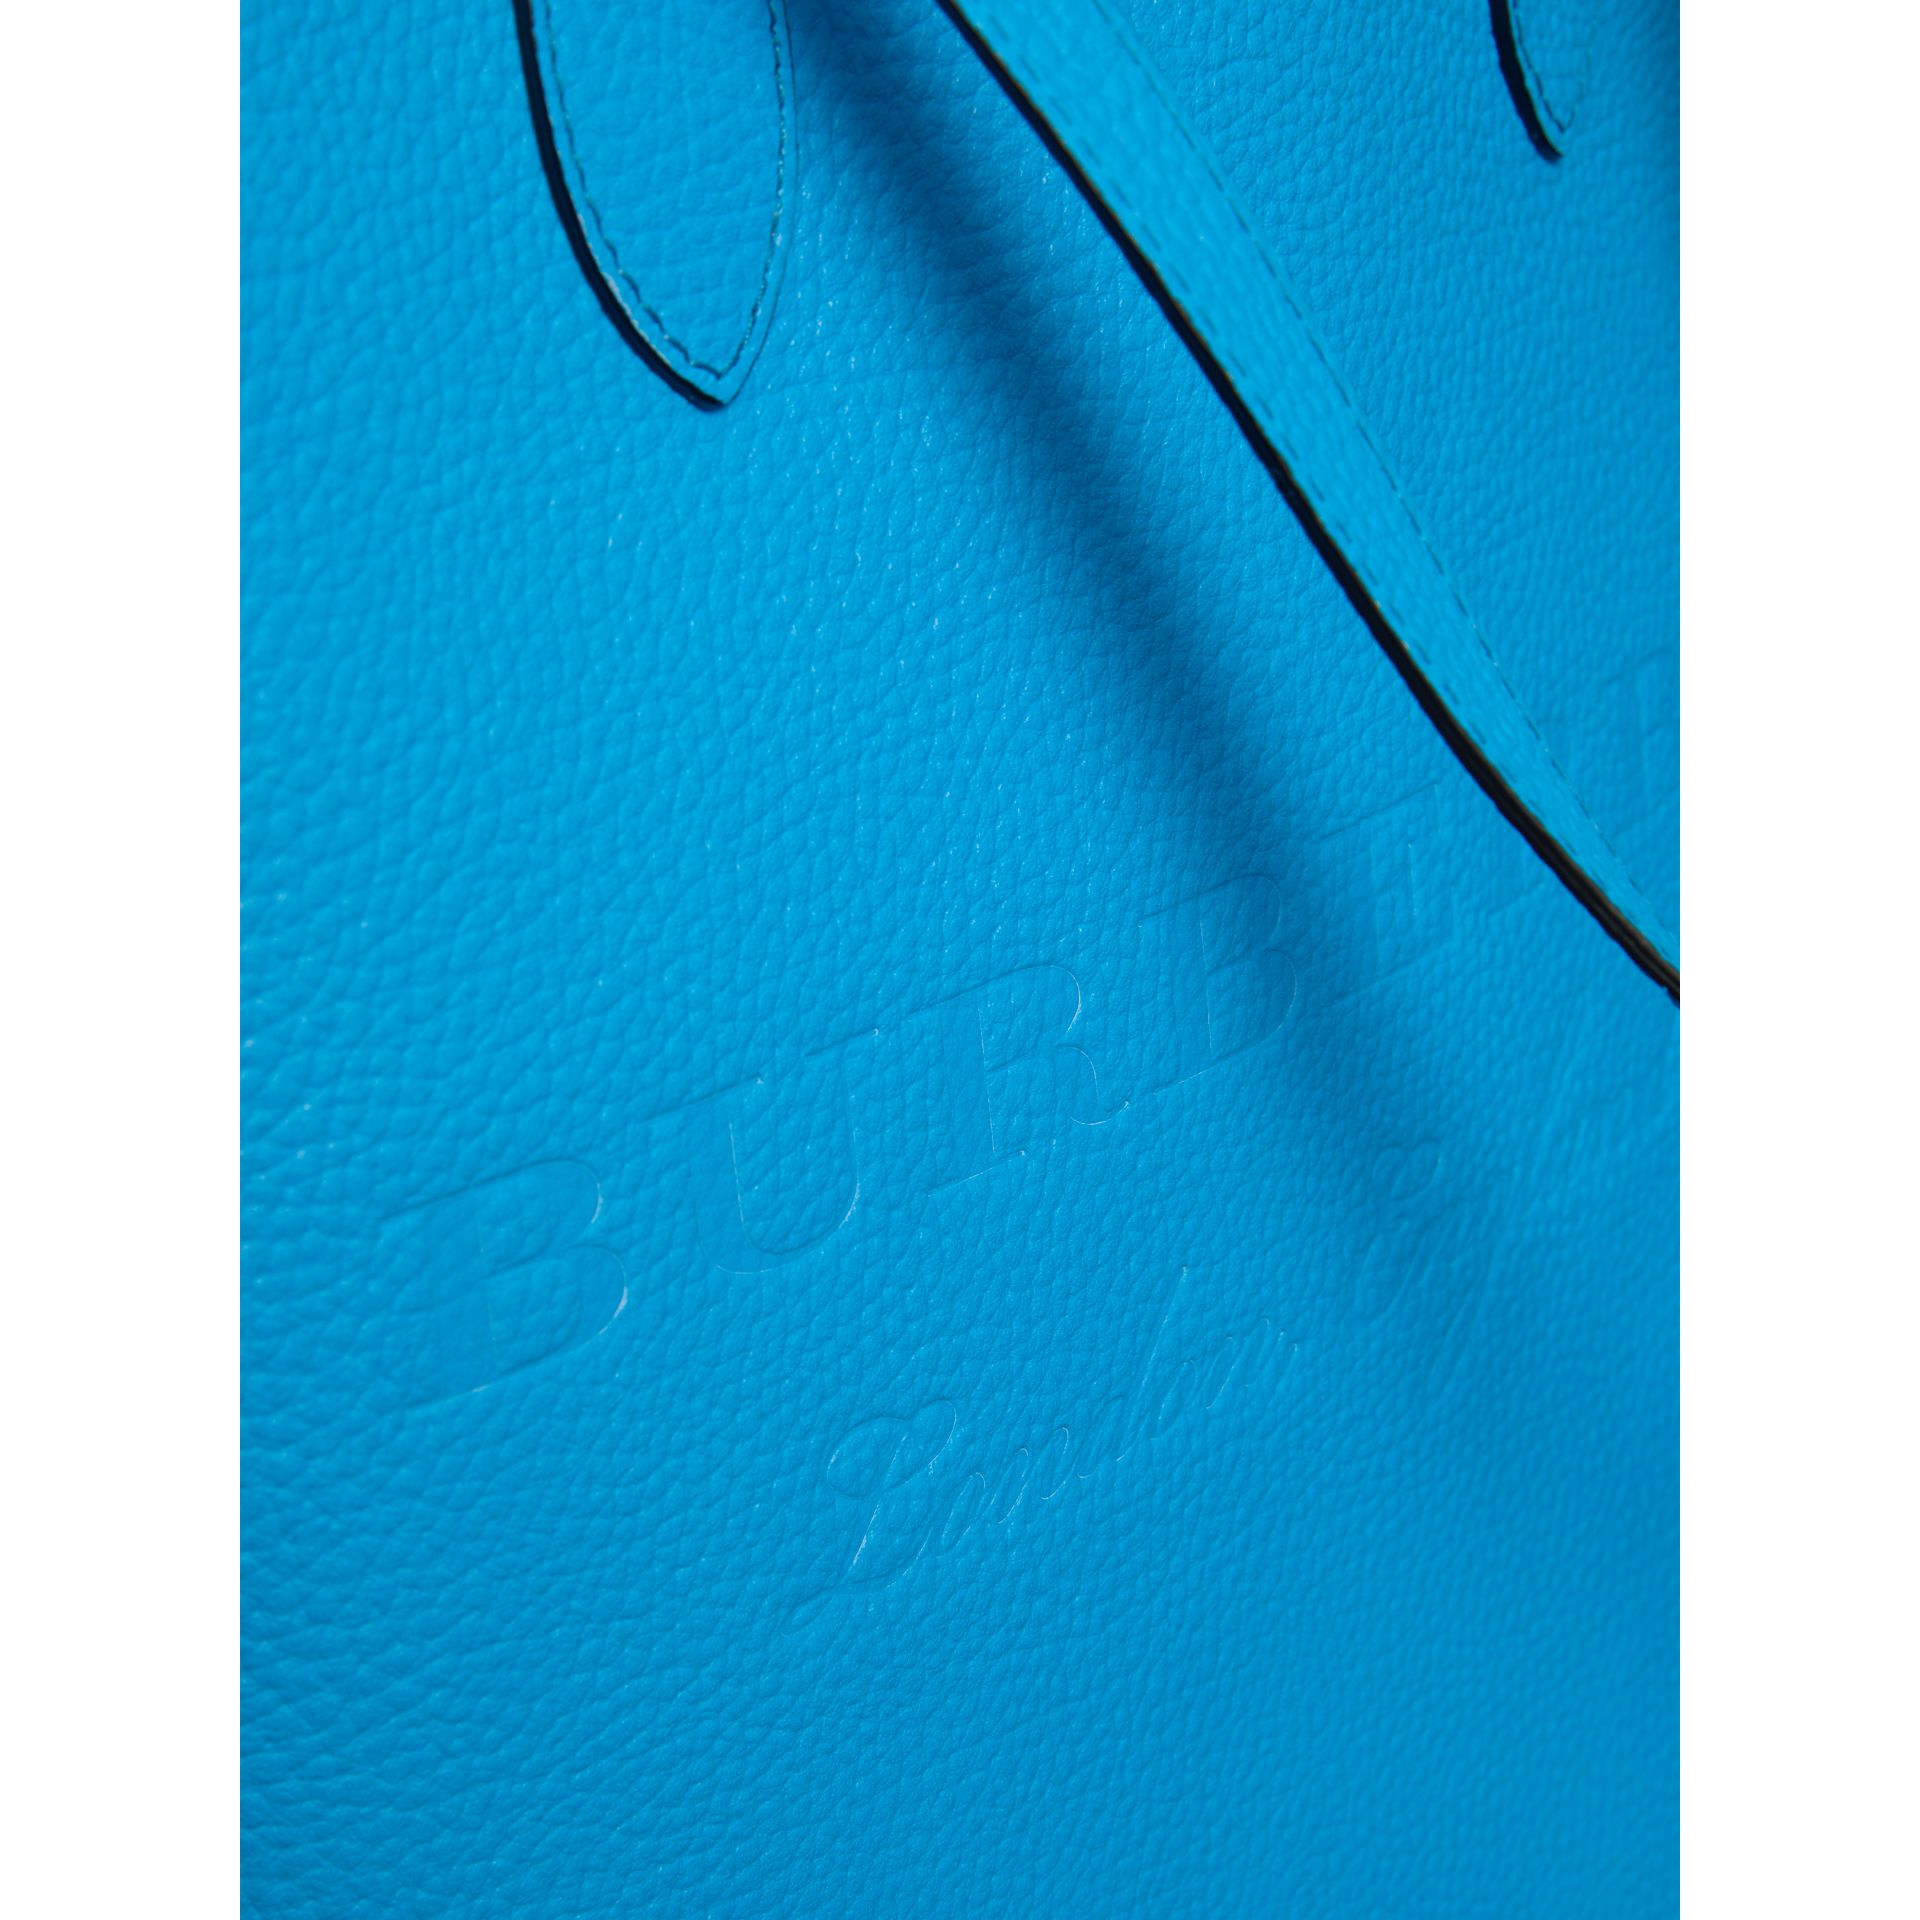 Medium Embossed Leather Tote in Neon Blue | Burberry Singapore - gallery image 1